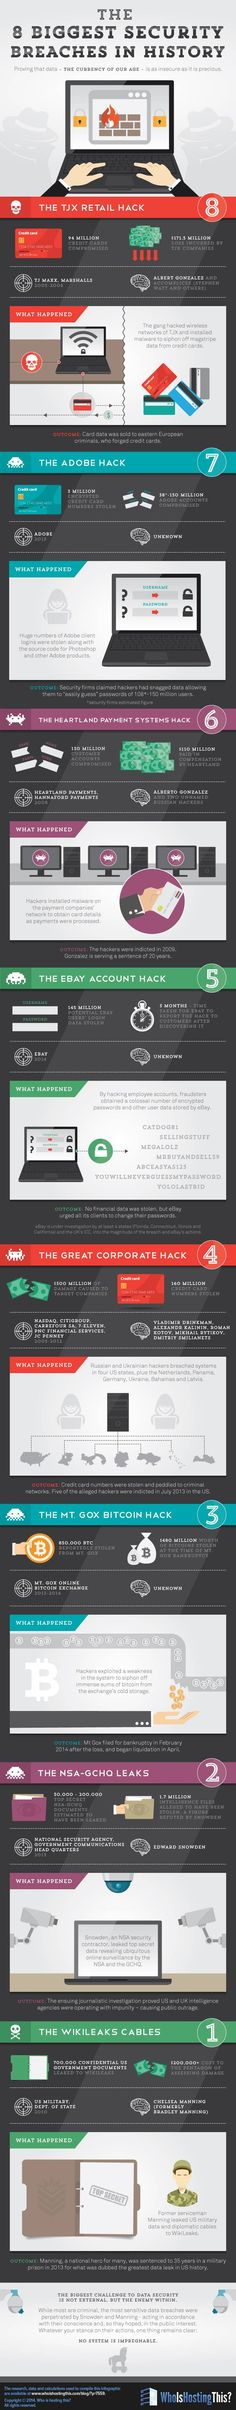 The 8 Biggest Security Breaches in History #infographic #Security #DataBreaches #Hacking